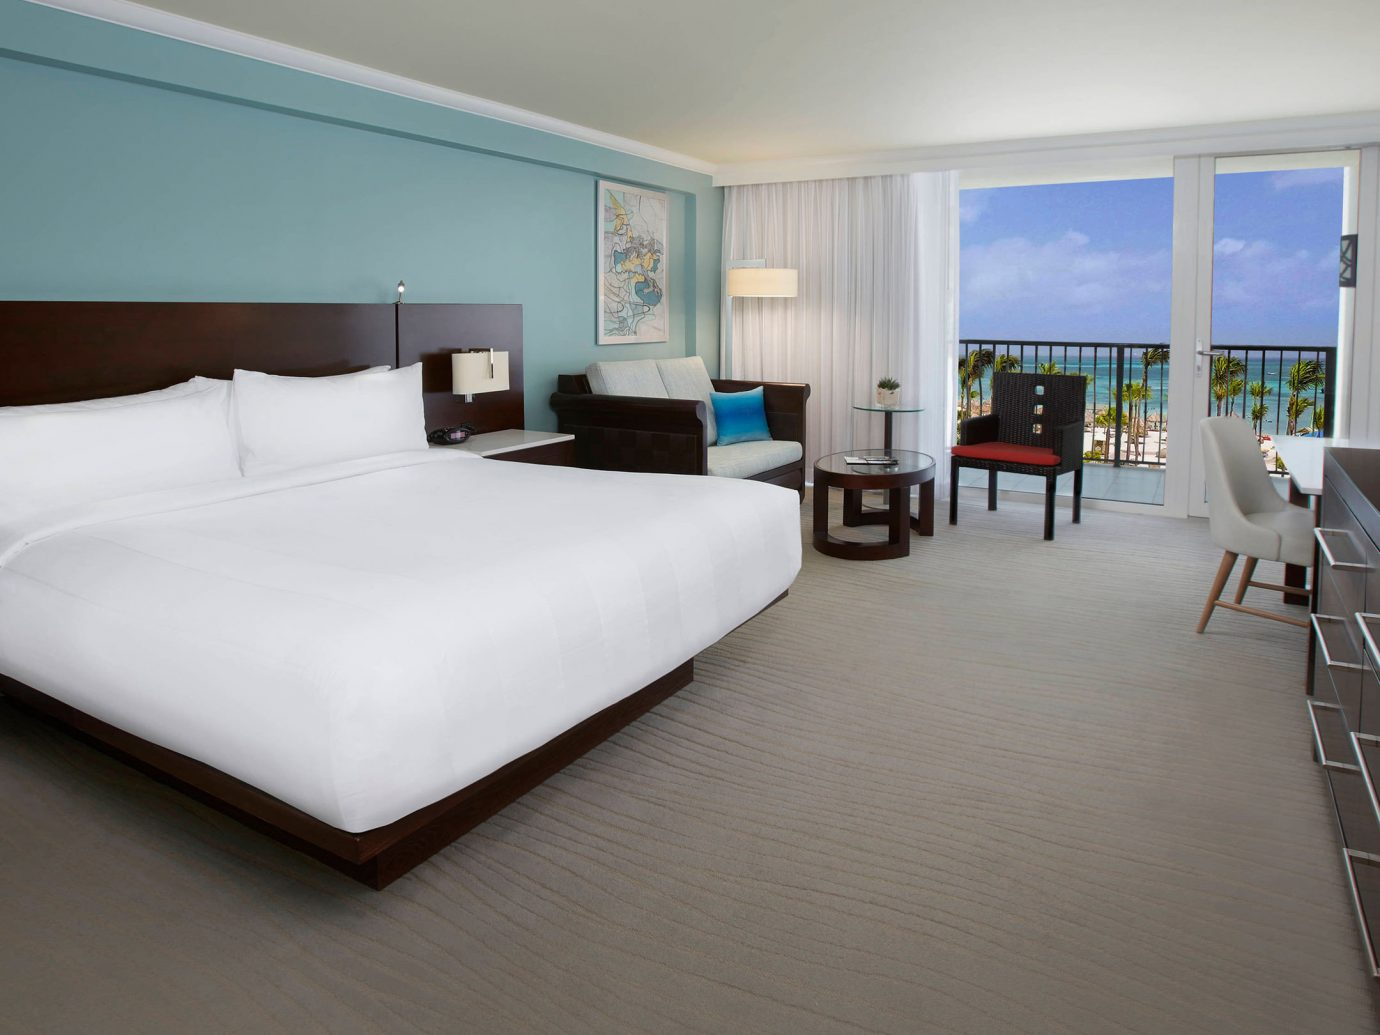 Aruba caribbean Hotels indoor floor wall room ceiling bed Suite hotel real estate furniture interior design Bedroom flooring